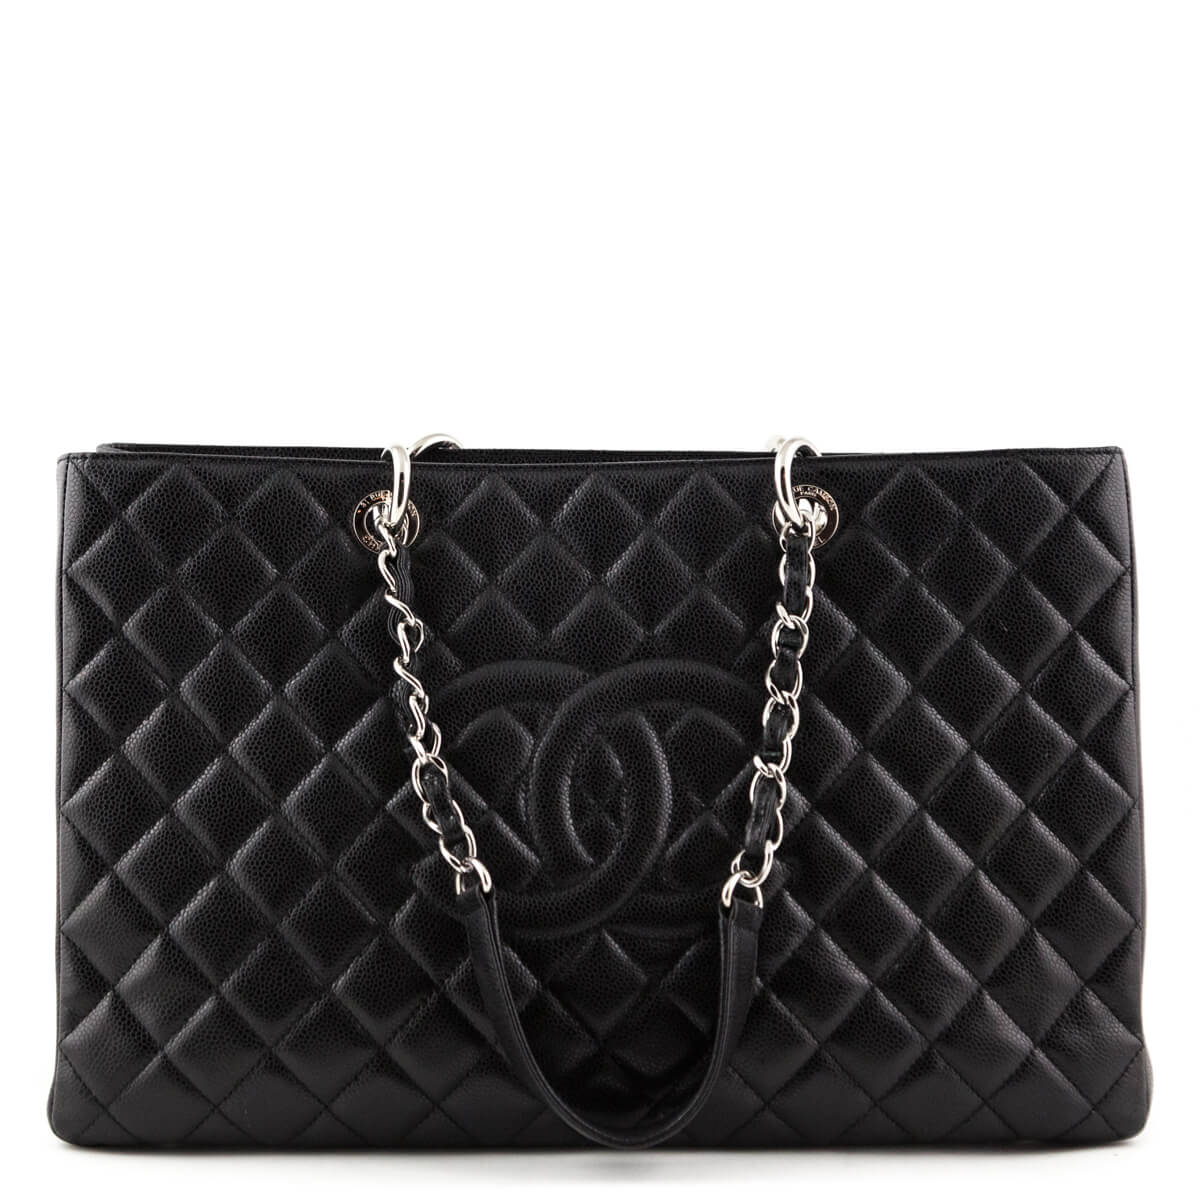 399ed448a8e3 Chanel Black Quilted Caviar XL GST Tote SHW - LOVE that BAG - Preowned  Authentic Designer ...